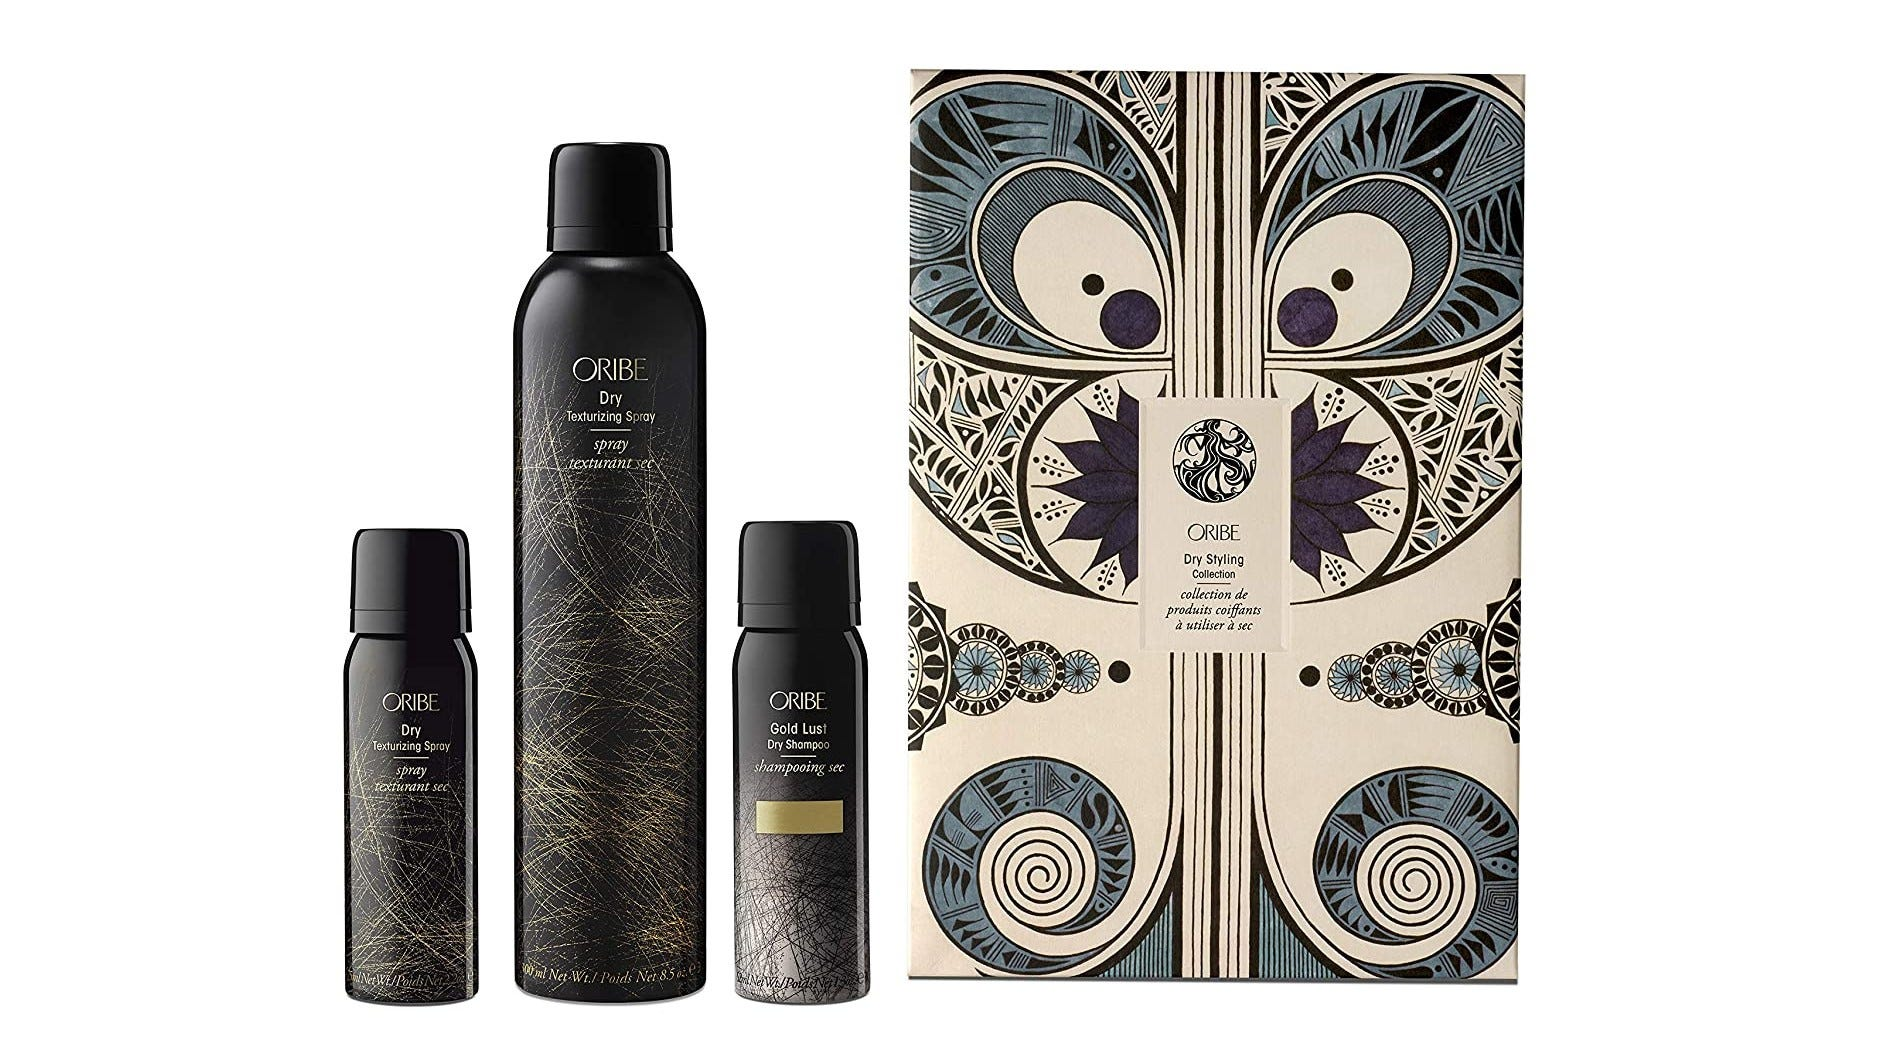 The Oribe Dry Styling Collection and package.